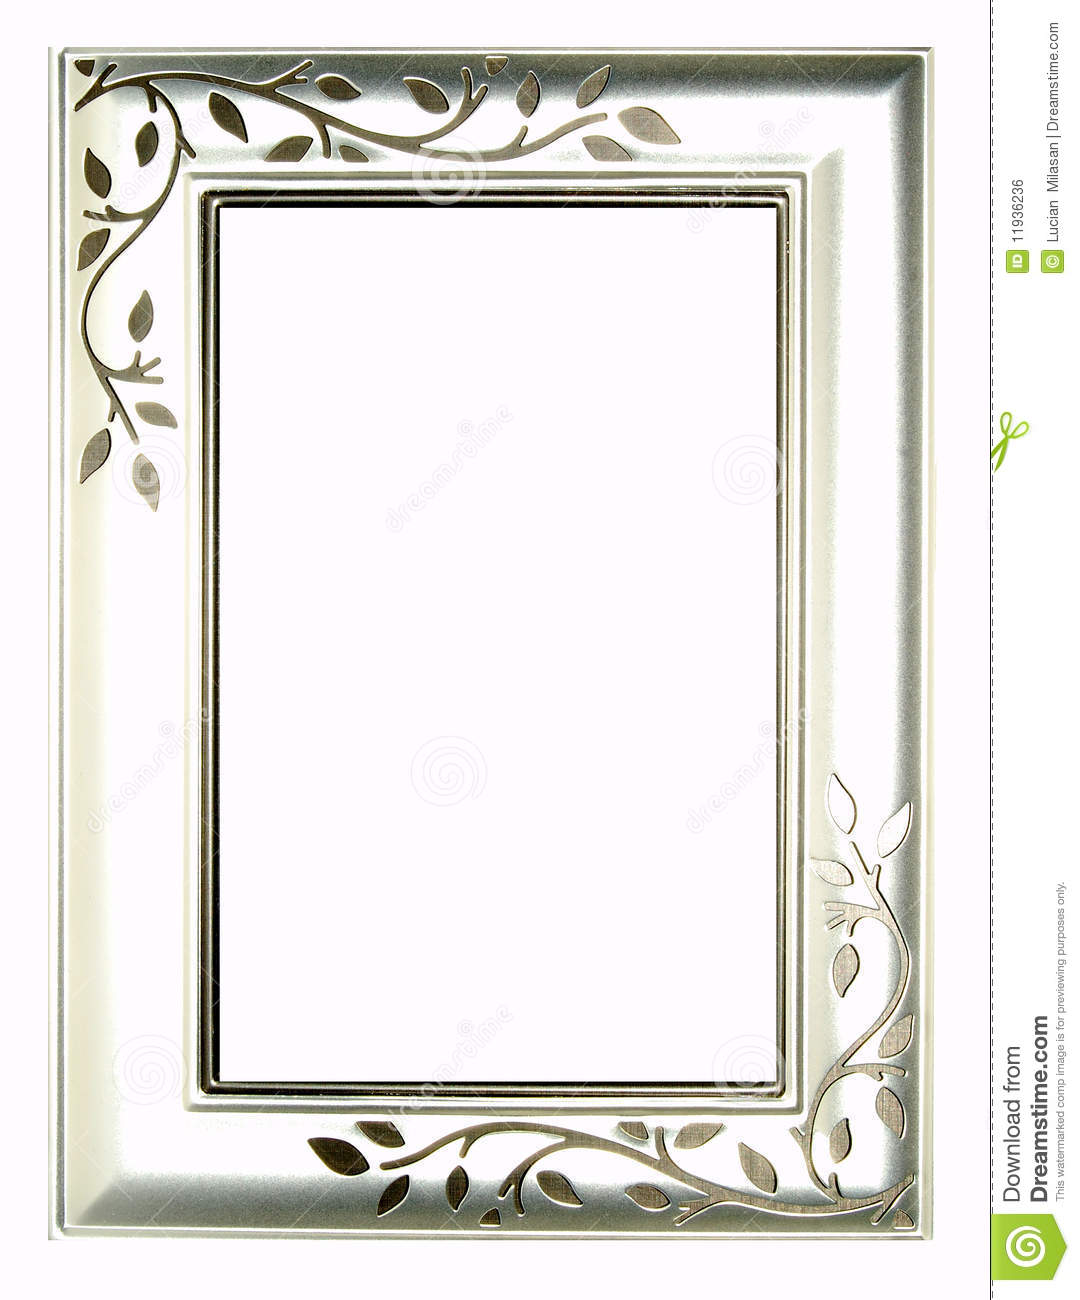 Silver Frame Royalty Free Stock Image - Image: 11936236